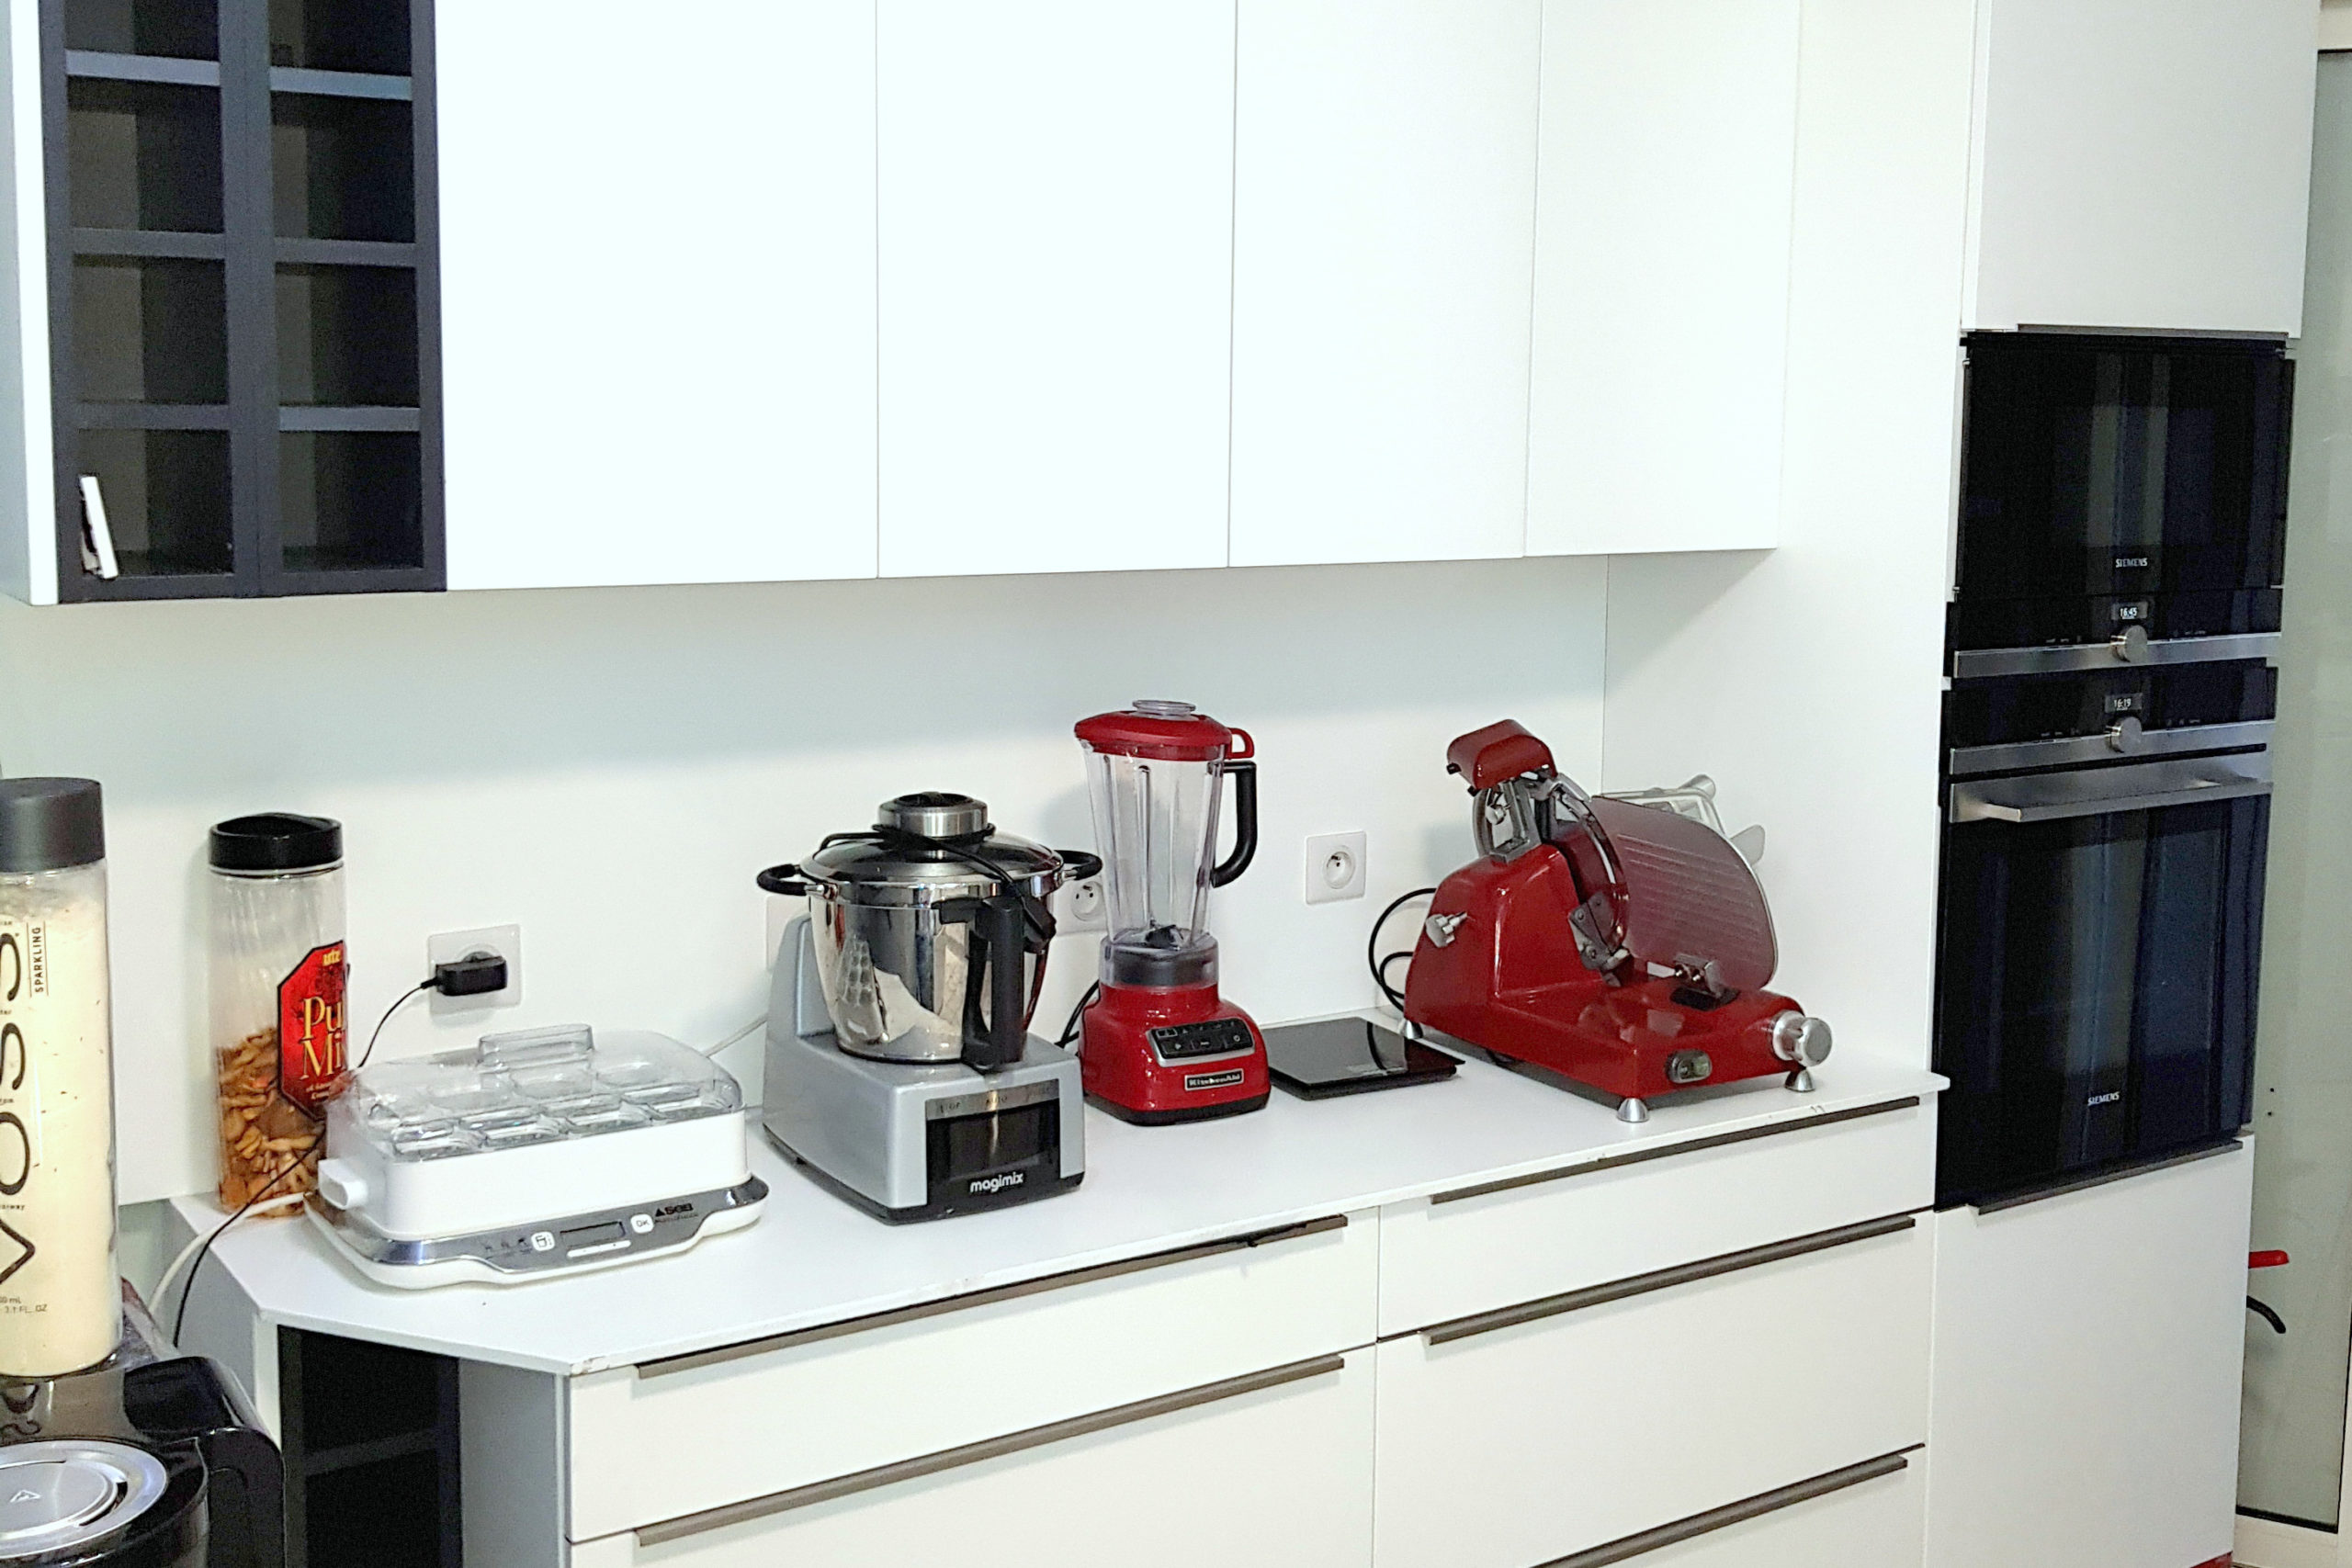 Shared kitchen of the residence - yoghurt machine, slicer, blender, Magimix, microwave and rotary heat oven